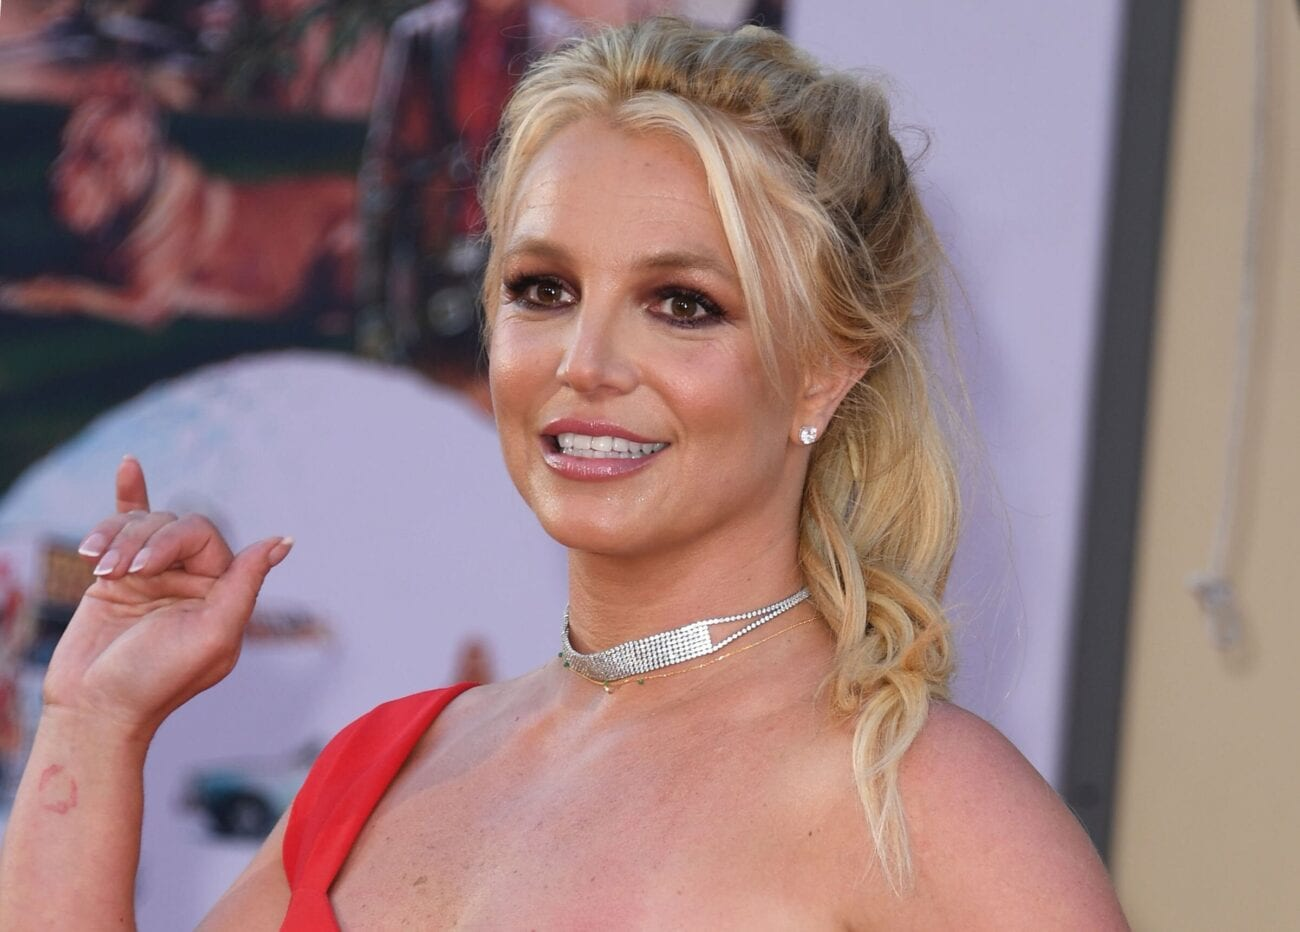 Britney Spears hasn't had much control of her life for over a decade. Who is in control of her life and her net worth?